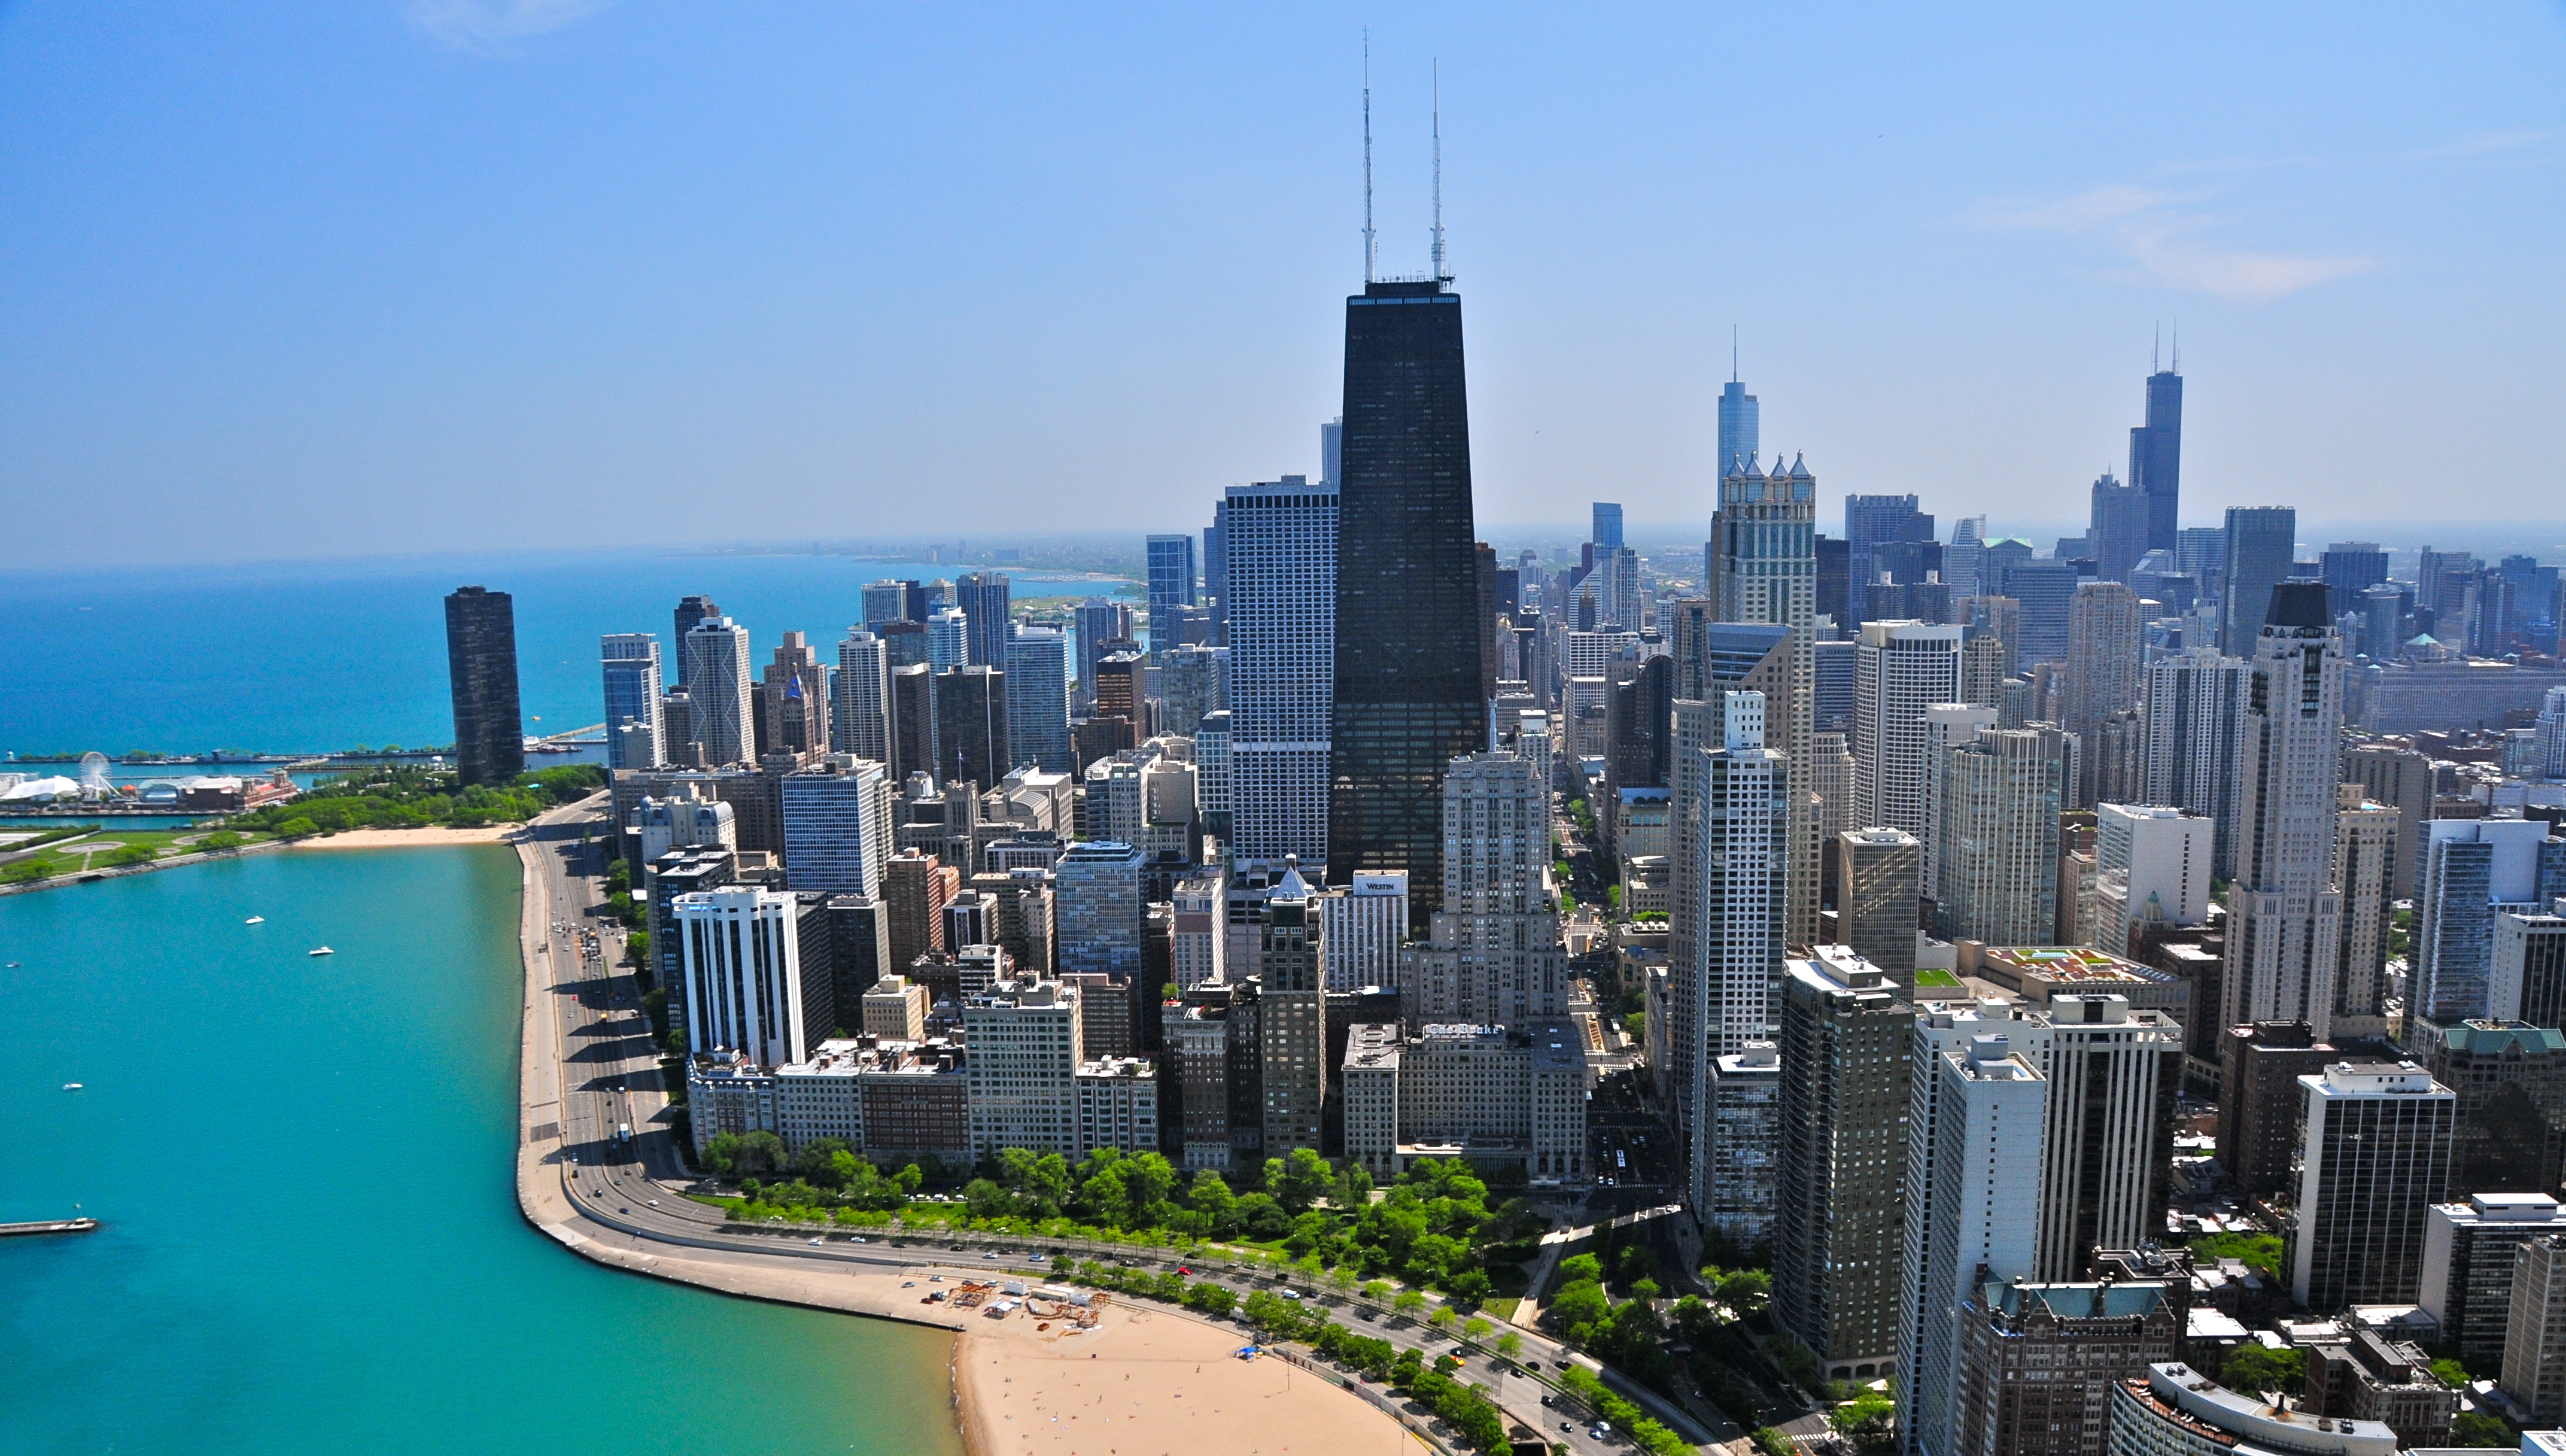 Women Advisers Forum Chicago will take place at The Westin Chicago River North in Chicago. Click here for accommodations.